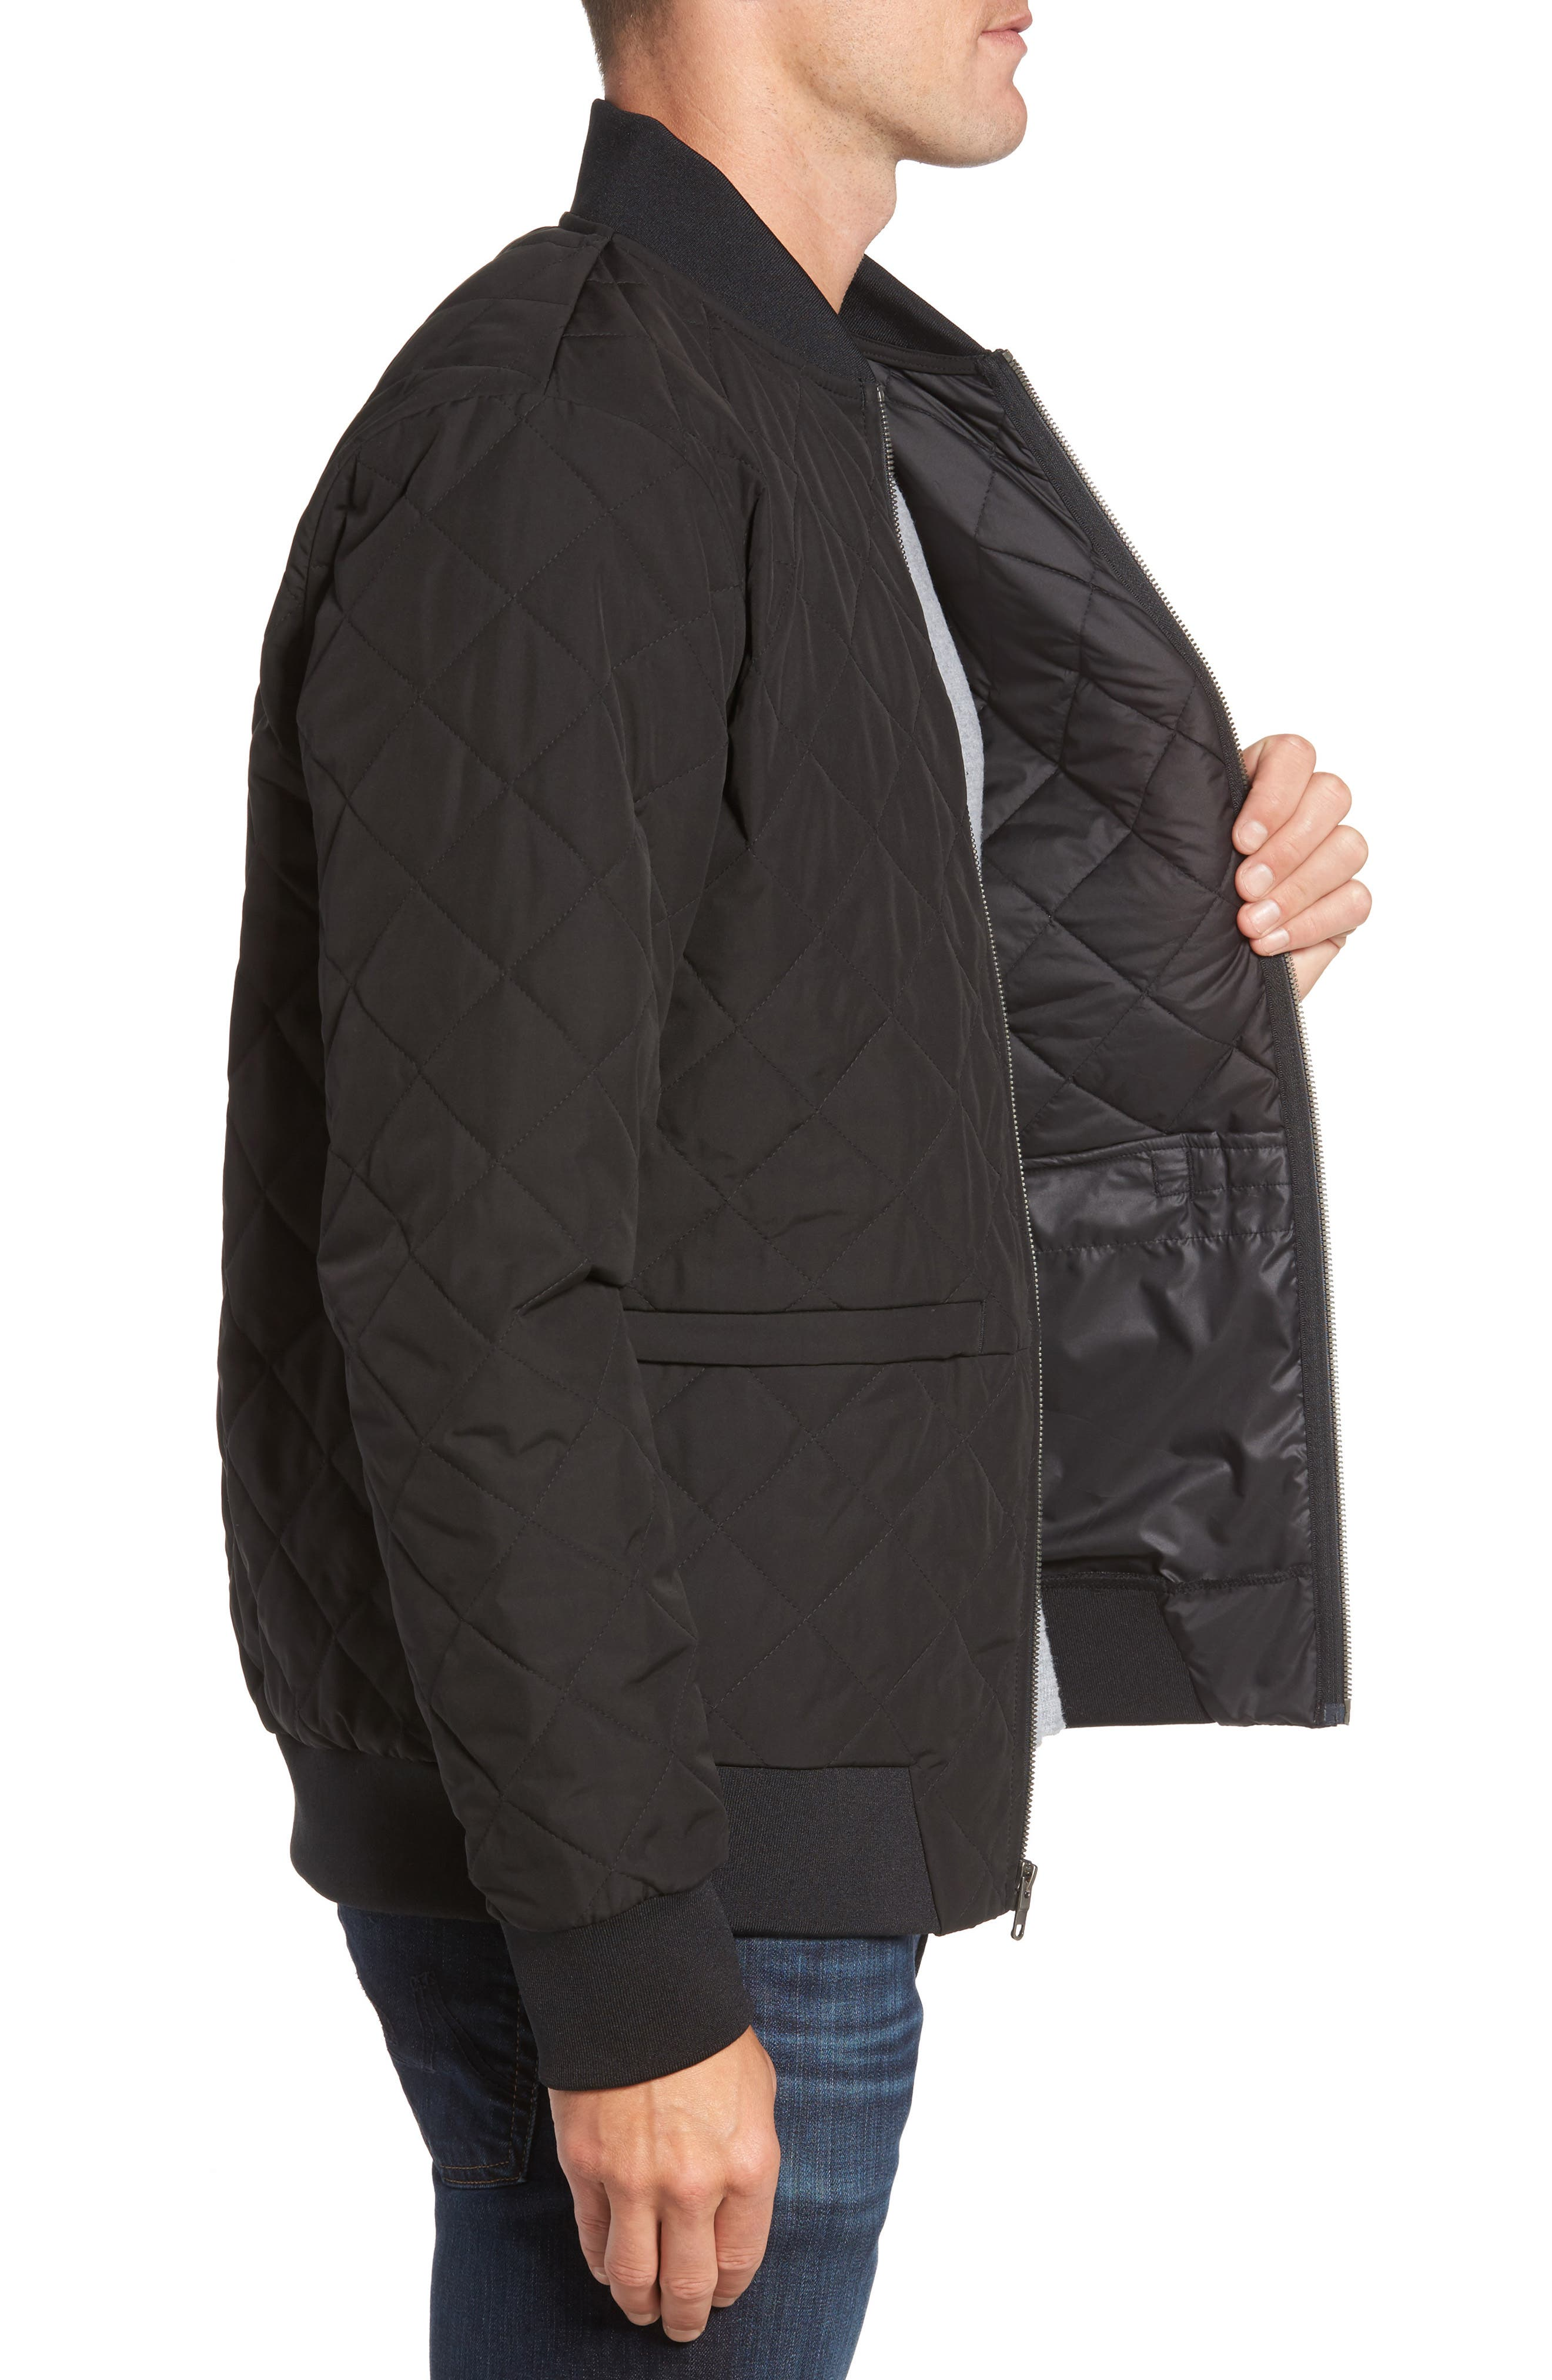 Distributor Quilted Bomber Jacket,                             Alternate thumbnail 3, color,                             001